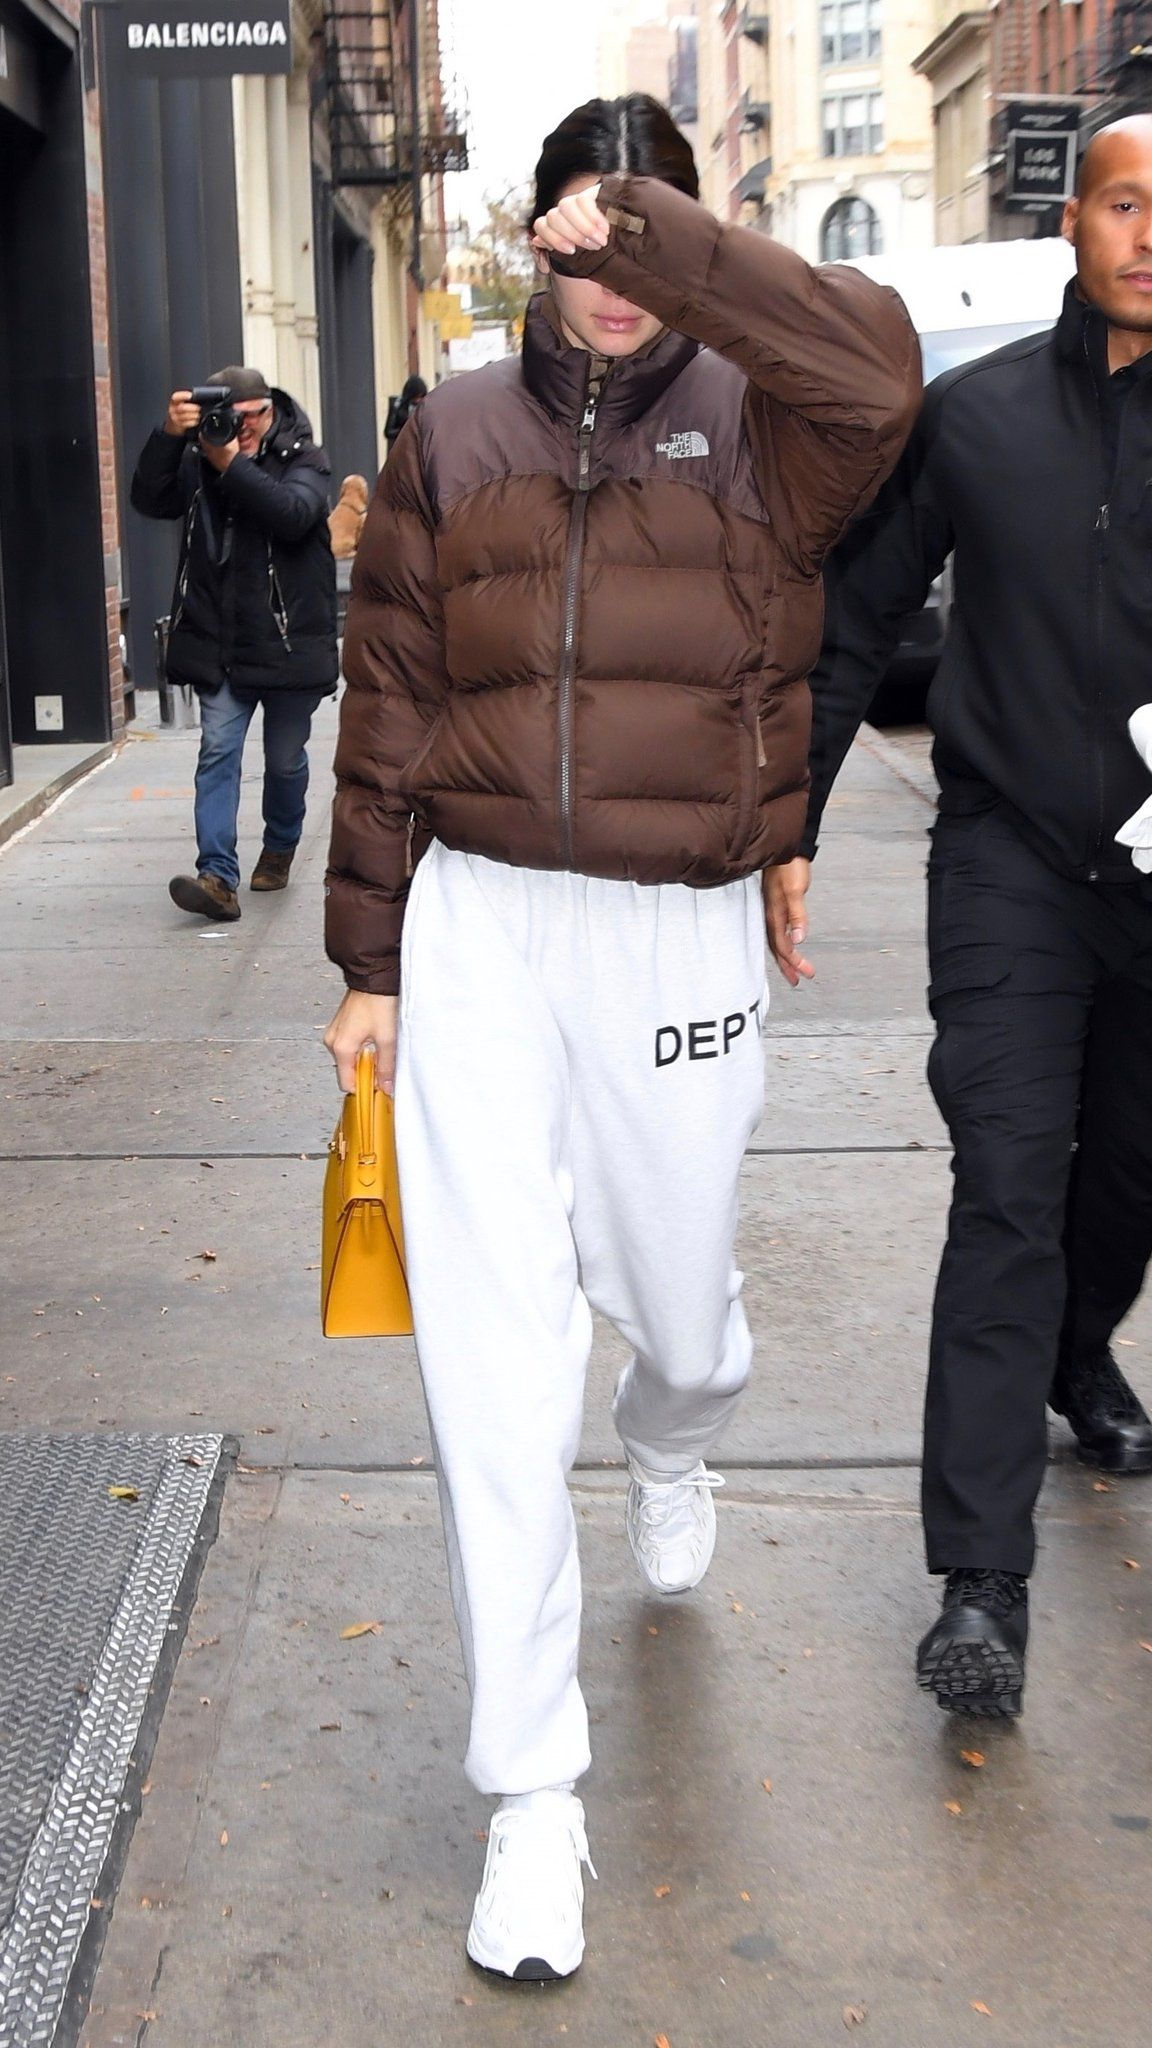 Kendall Outfits On Twitter North Face Jacket Outfit North Face Puffer Jacket Brown North Face Jacket [ 2048 x 1152 Pixel ]